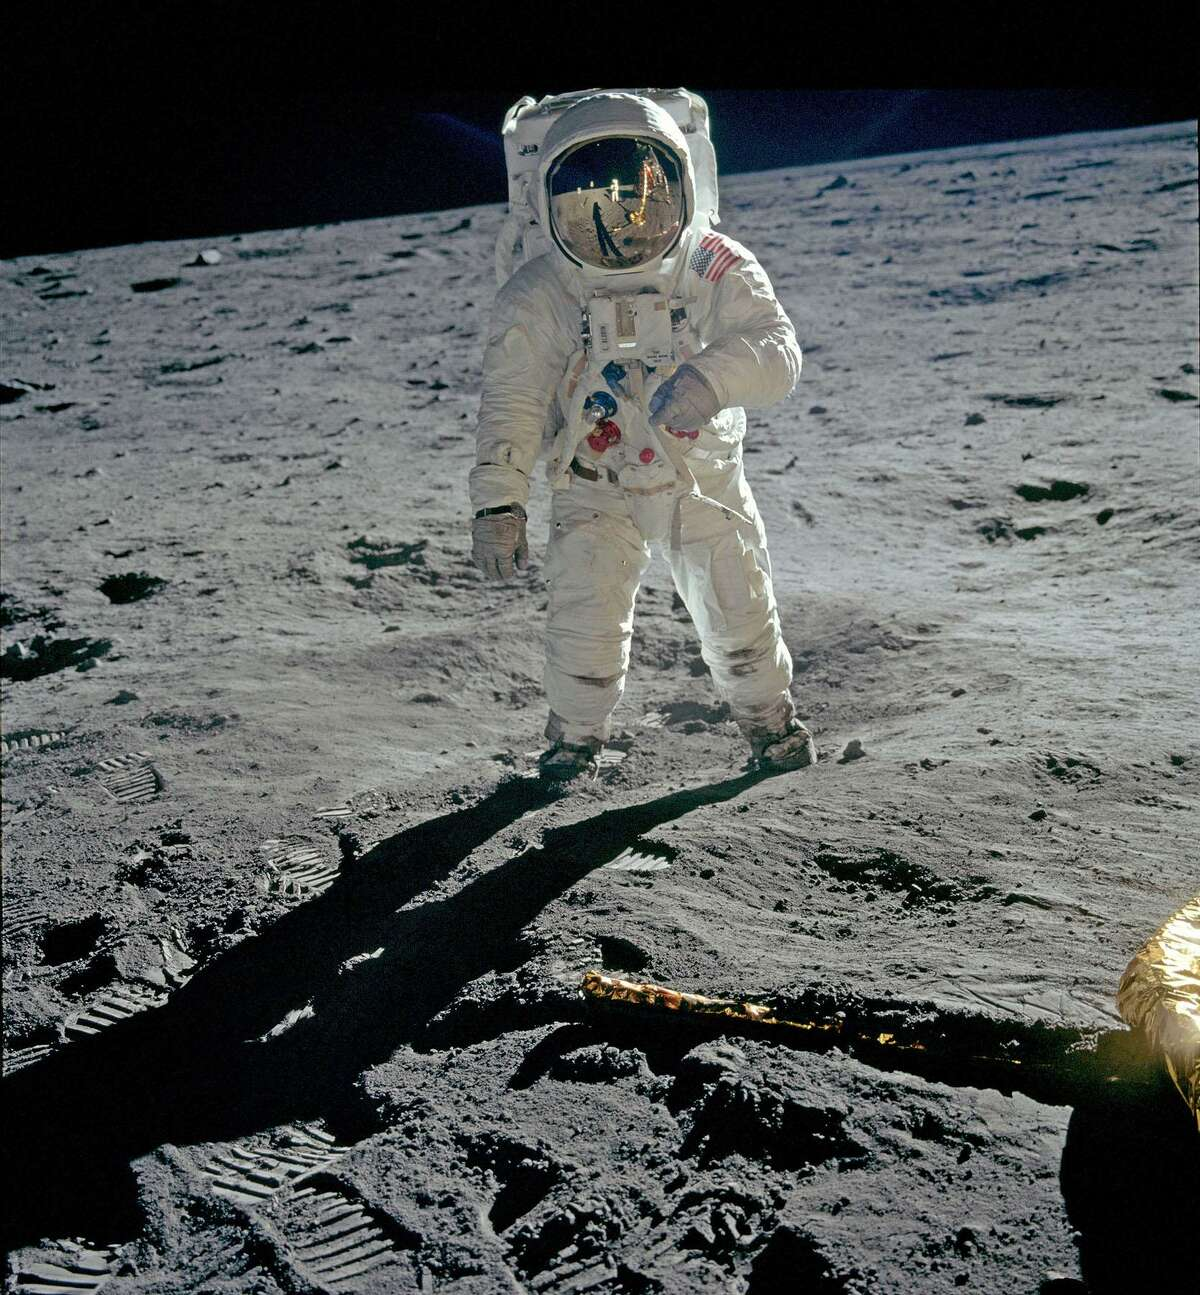 The Apollo 11 will be screened at the Maritime Aquarium at Norwalk, 10 North Water Street, Norwalk. The screenings are part of the display commemorating the historic moon landing on July 20, 1969. For more information, visit maritimeaquarium.org.